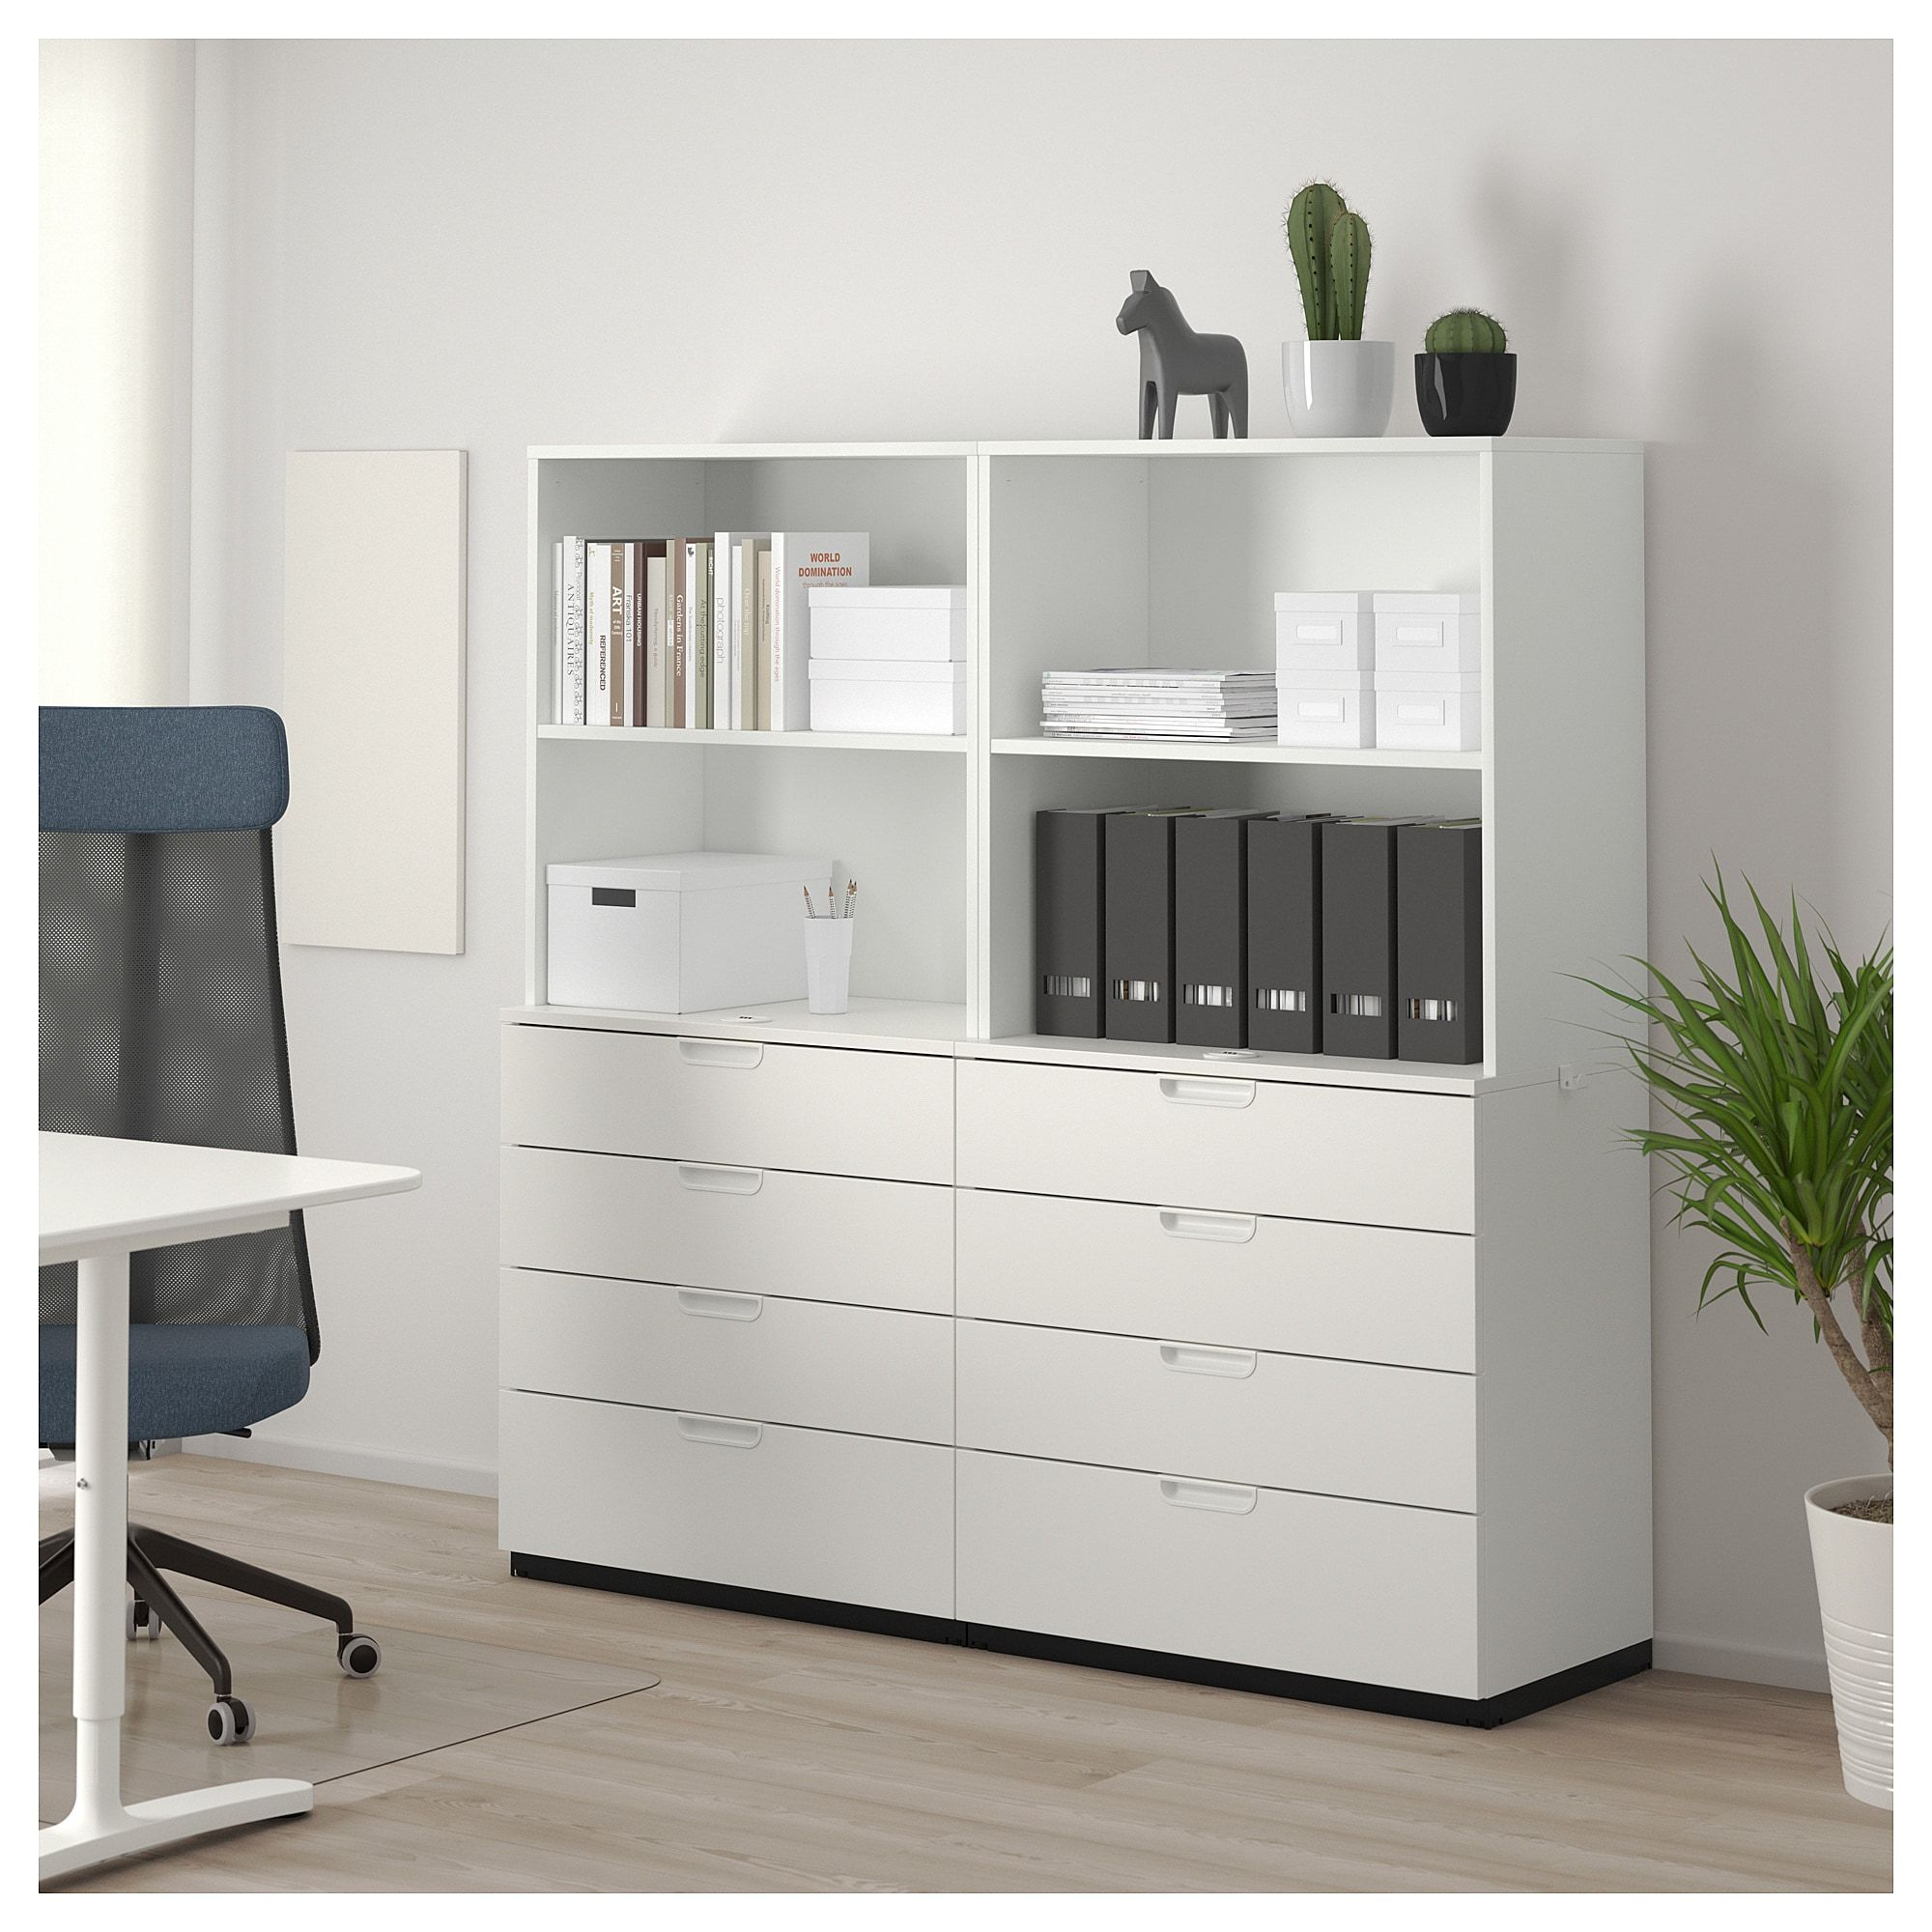 Galant Storage Combination With Drawers White 63x63 160x160